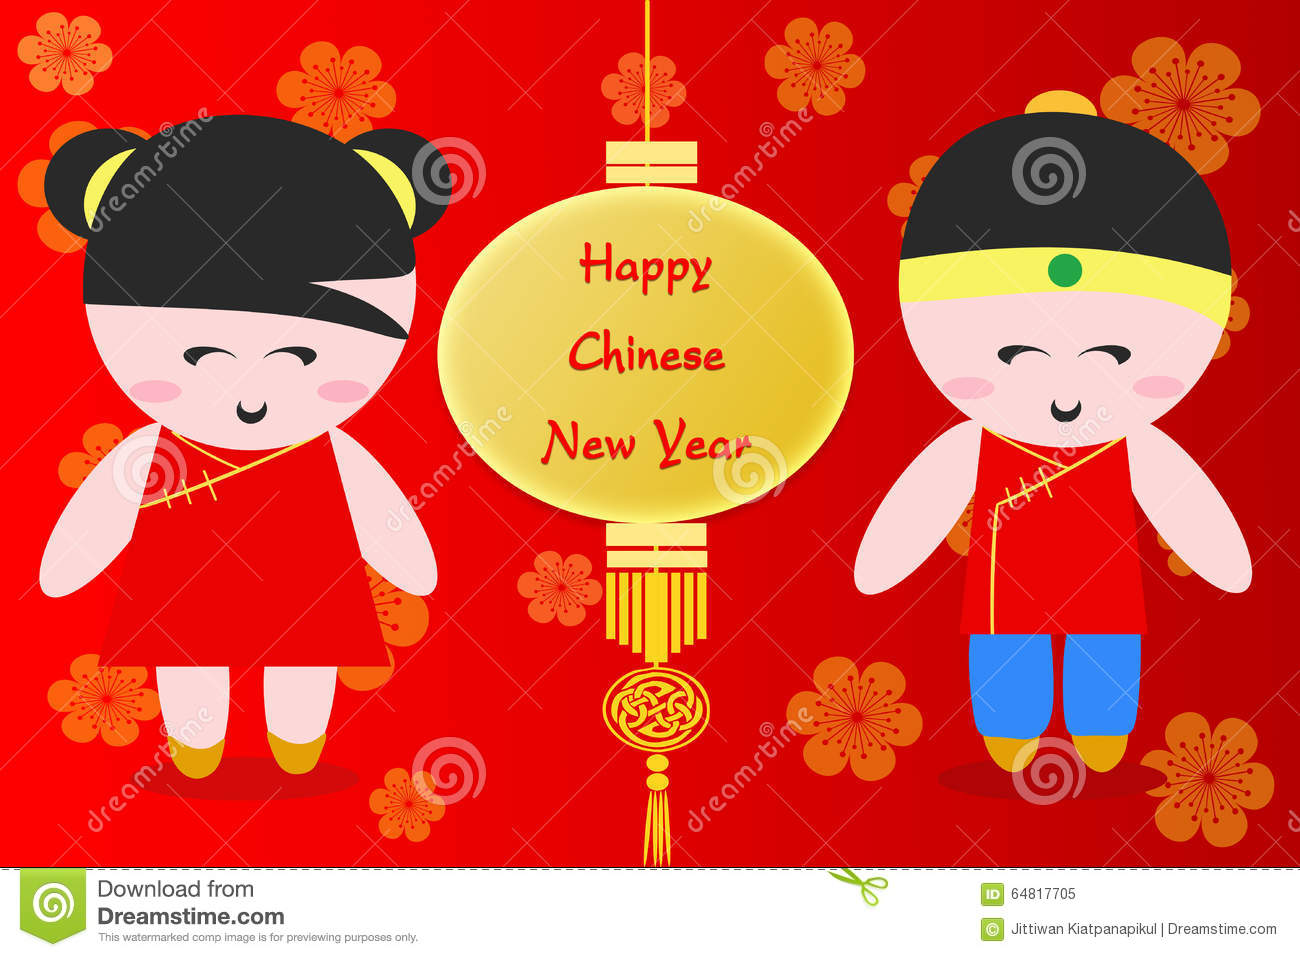 Happy chinese new year greeting cartoon background illustration happy chinese new year greeting cartoon background m4hsunfo